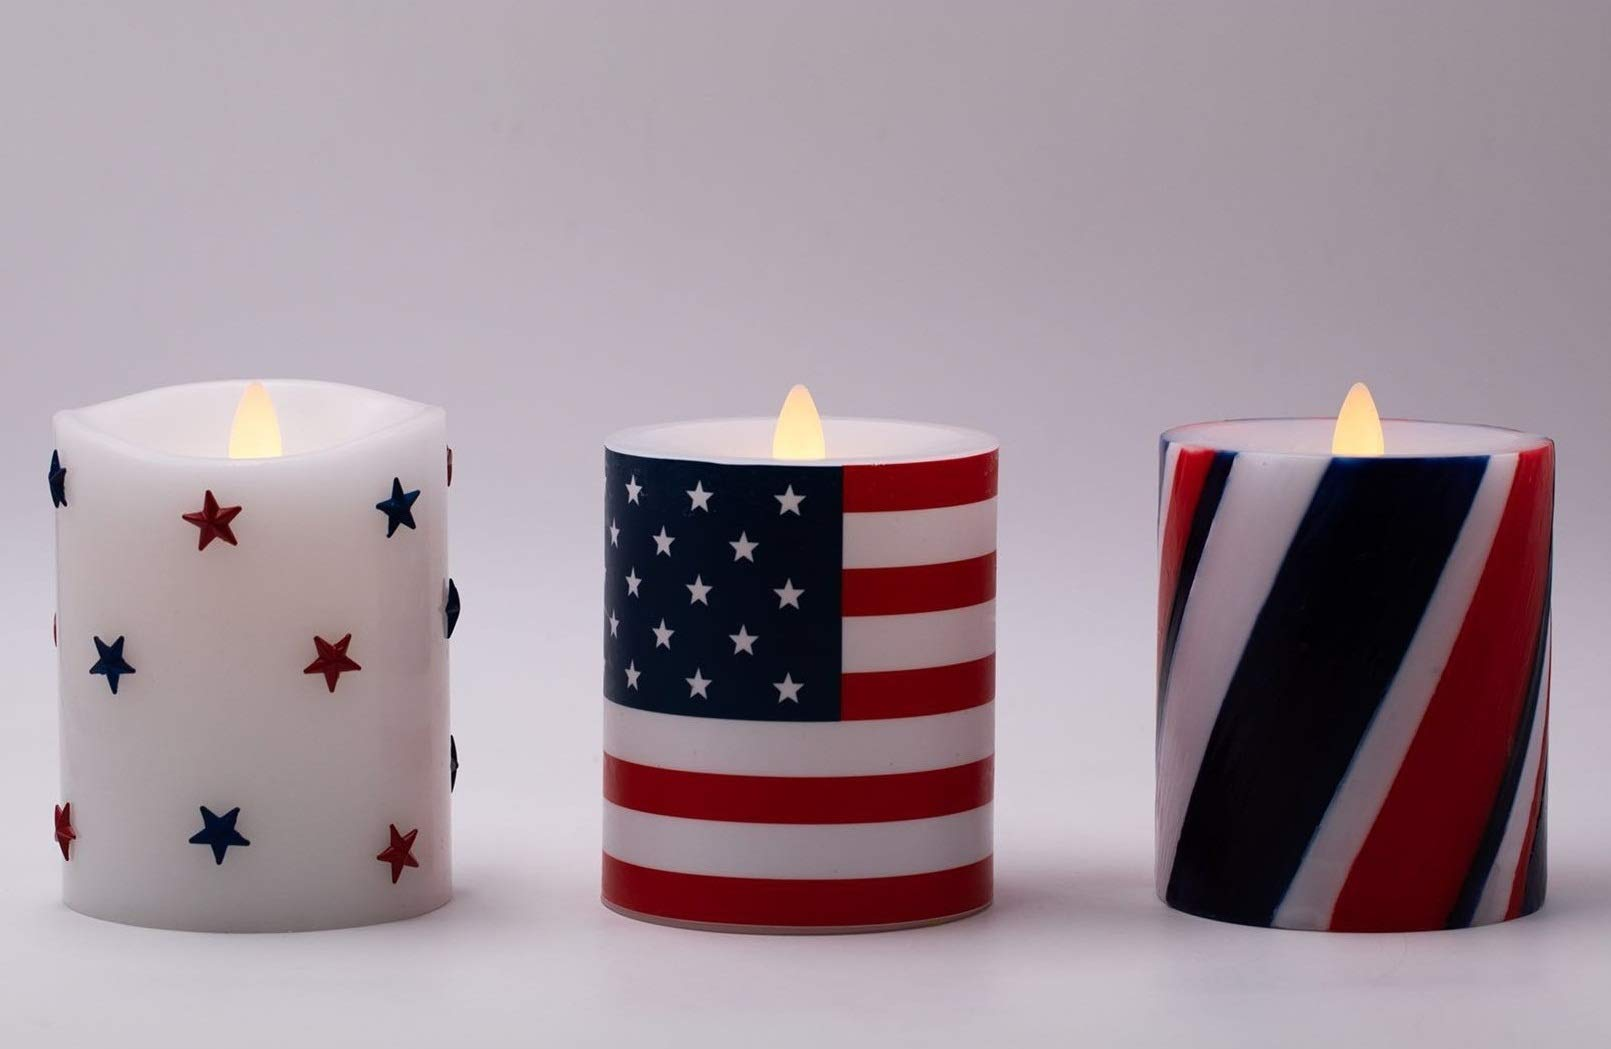 """Flameless Candles Set of 3(D 3.5"""" x H 5"""") Battery Operated American Flag Pillar Candles with Timer and Remote to Buy Separately"""